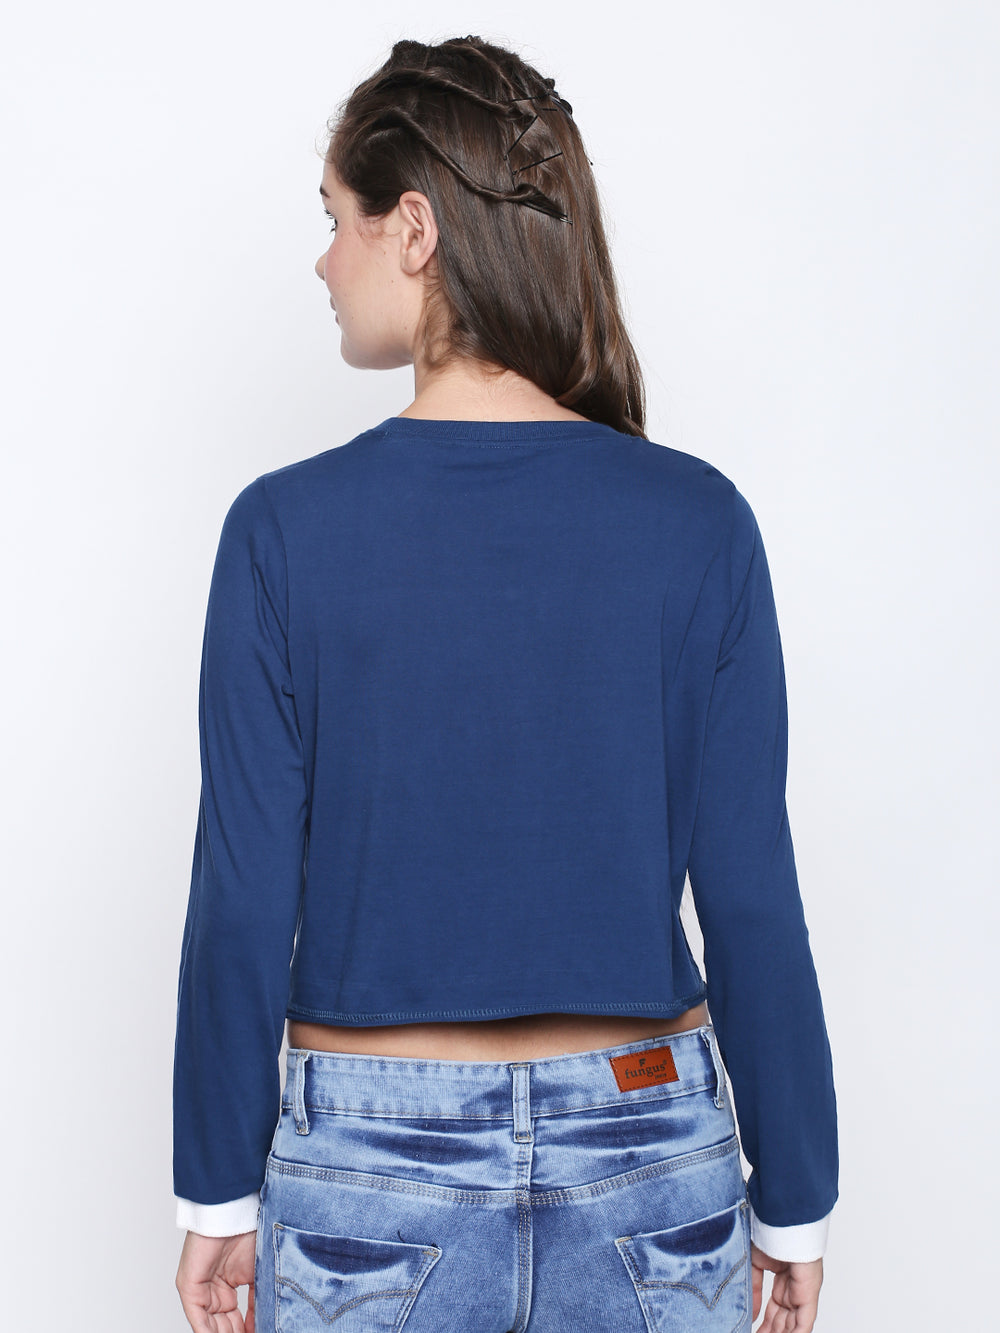 Navy Blue Unformulated Full Sleeve Crop Top